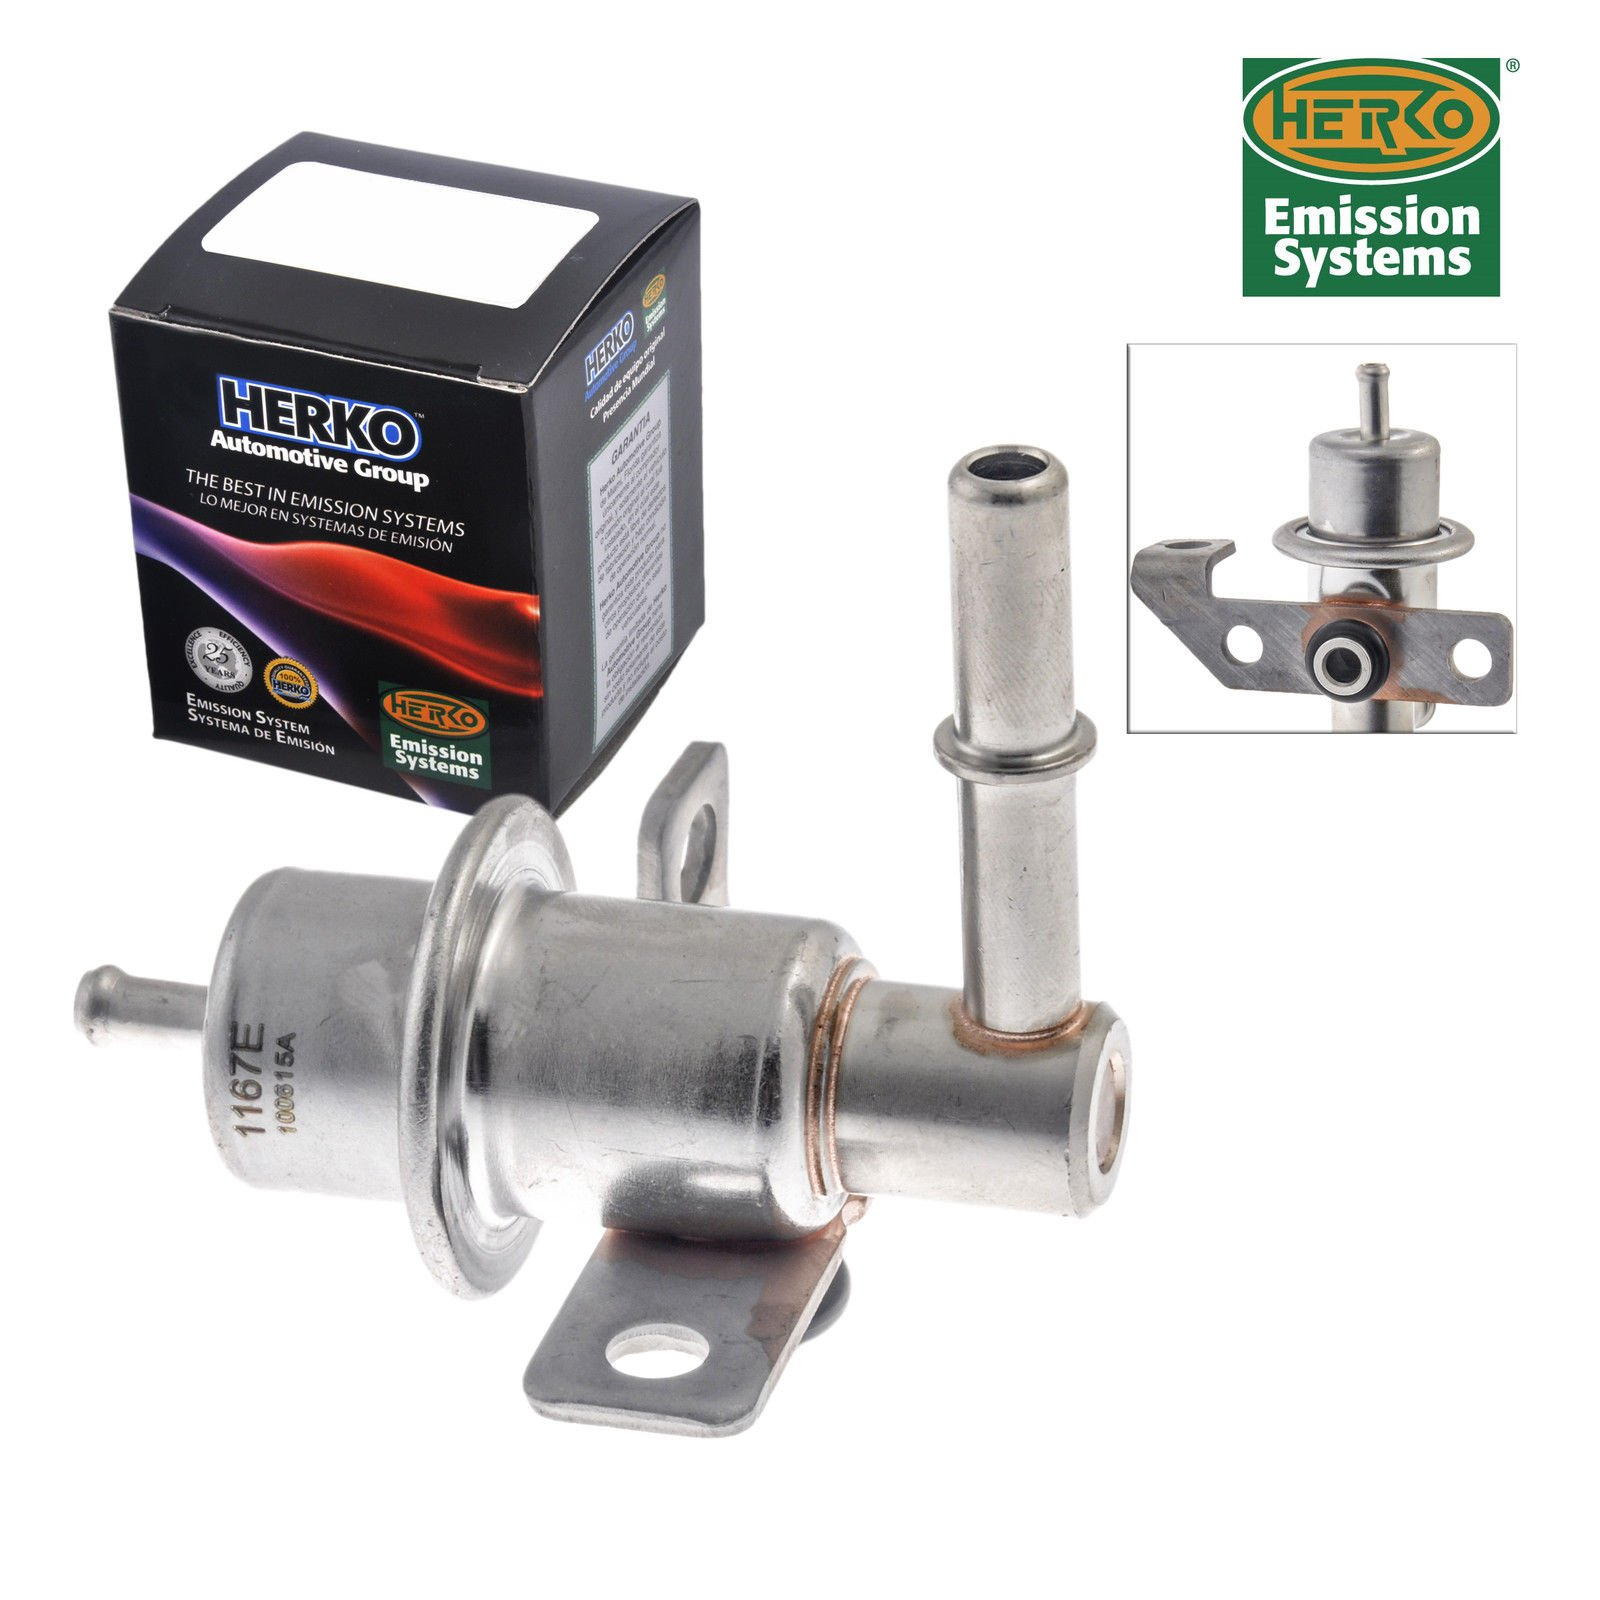 AD Auto Parts New Fuel Pressure Regulator Herko PR4062 for Ford 2000-2005 by AD Auto Parts